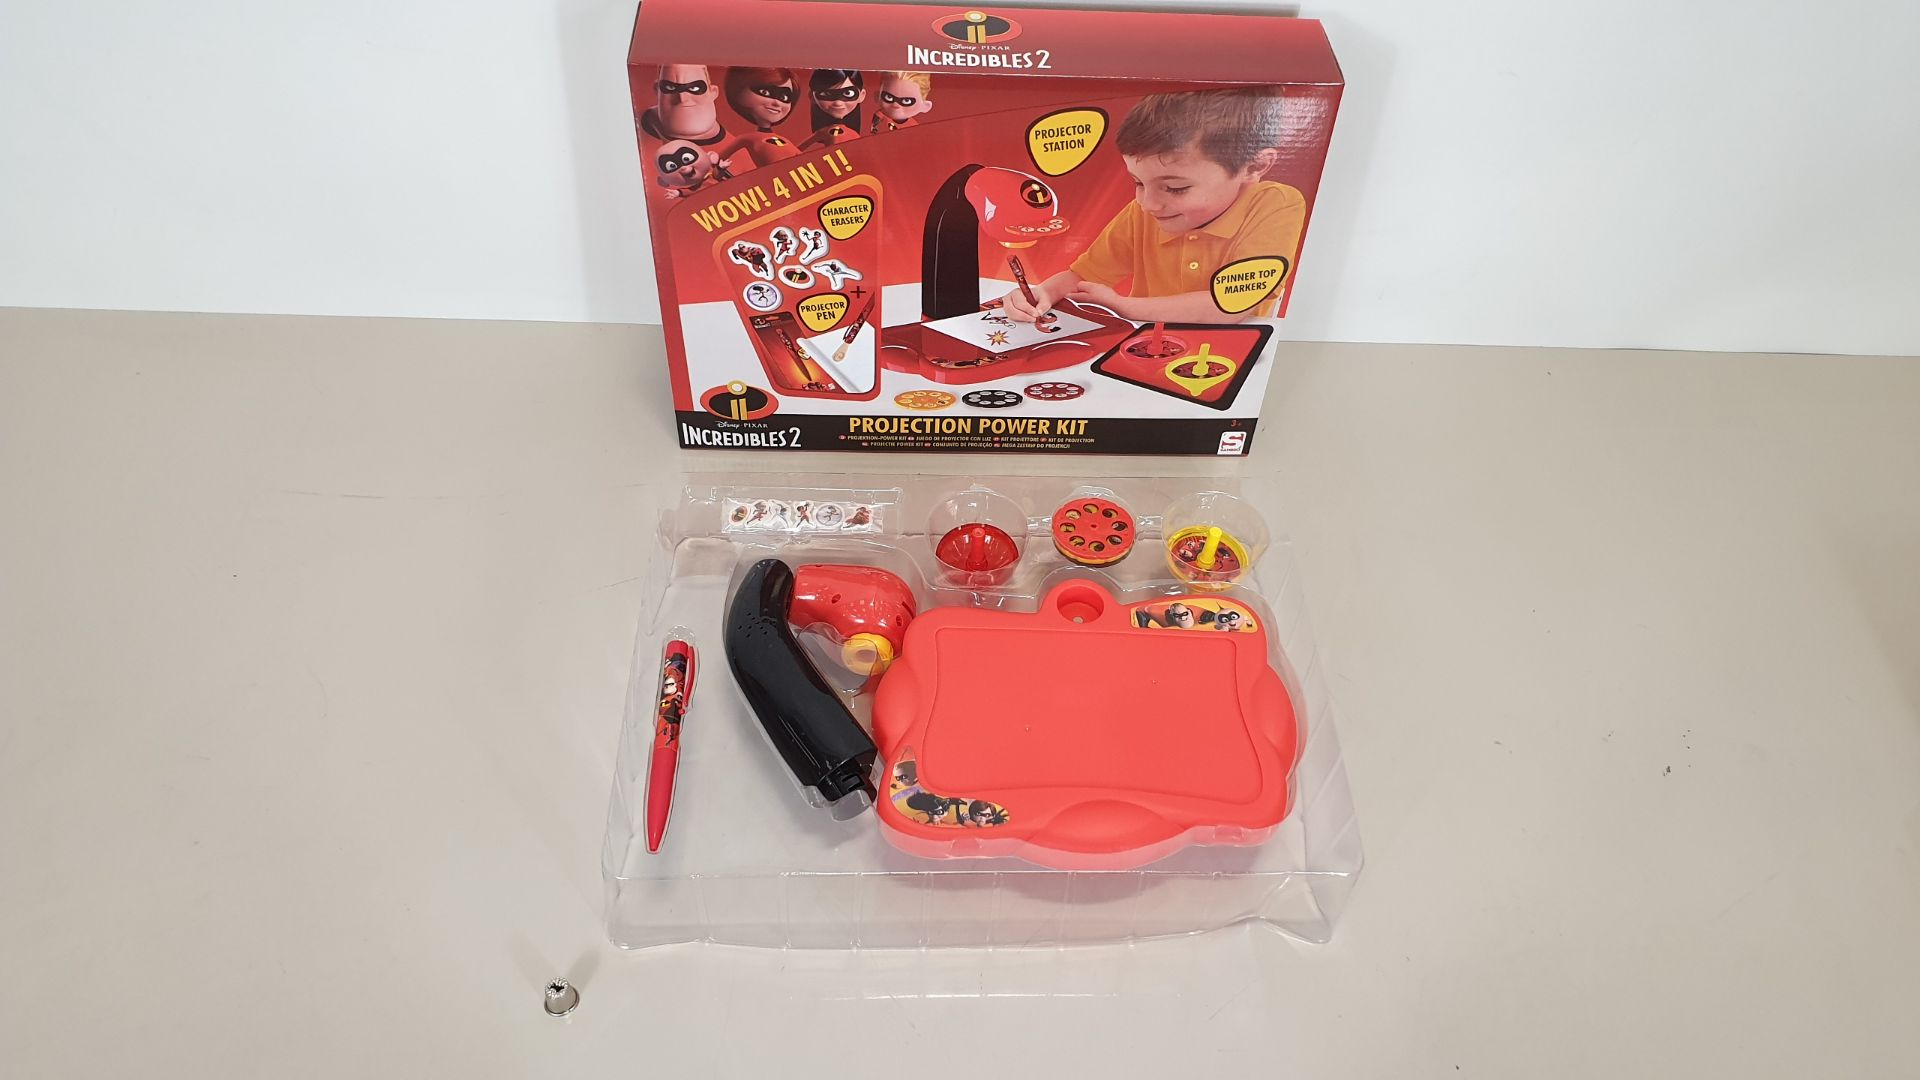 Lot 38 - 60 X BRAND NEW DISNEY PIXAR INCREDIBLES 2 WOW 4 IN 1 PROJECTION POWER KIT, INCLUDES PROJECTION